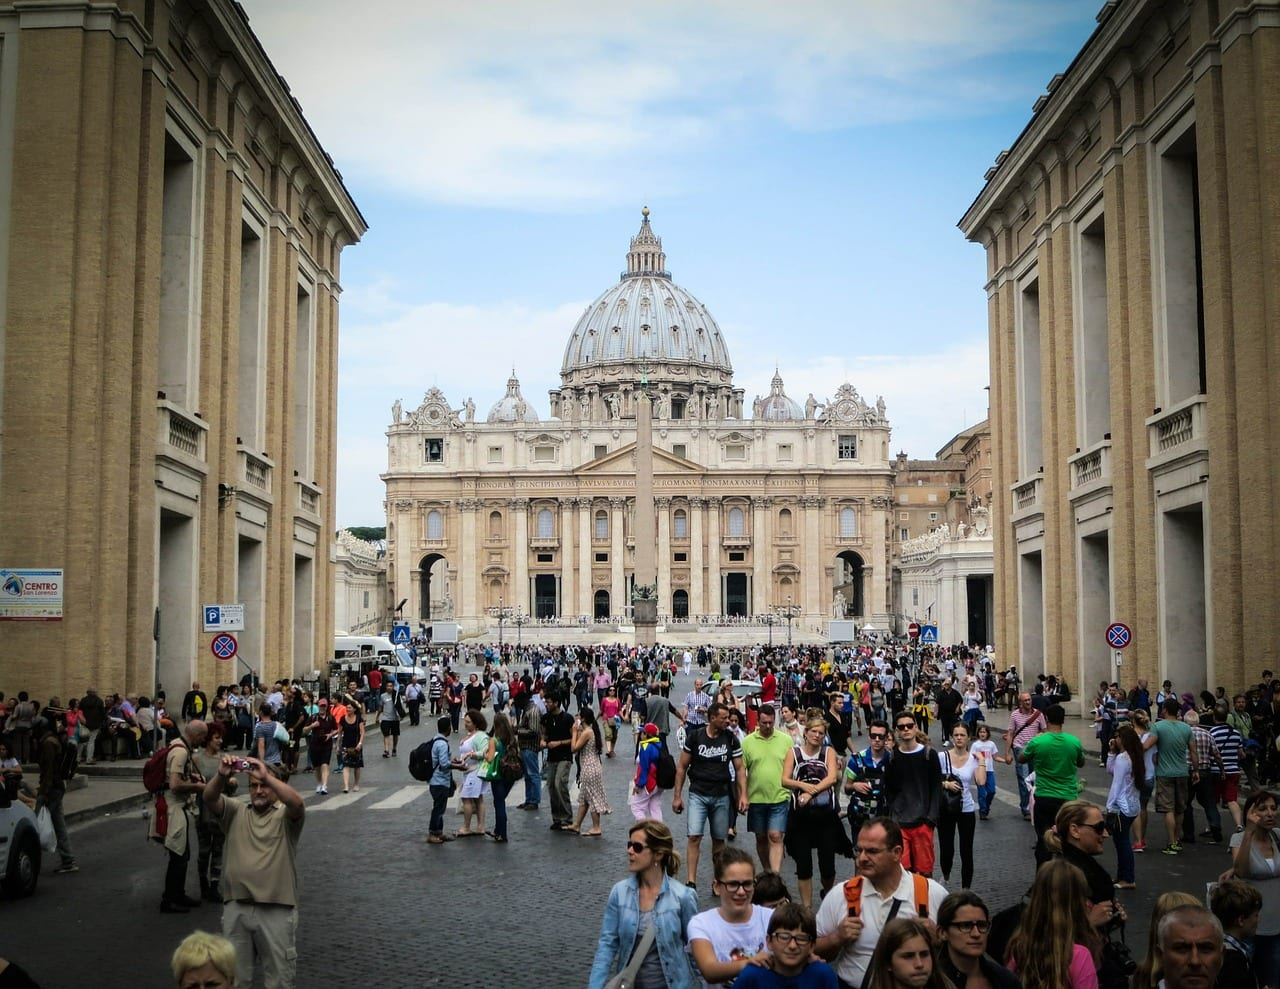 Expect lots of people inside the Vatican